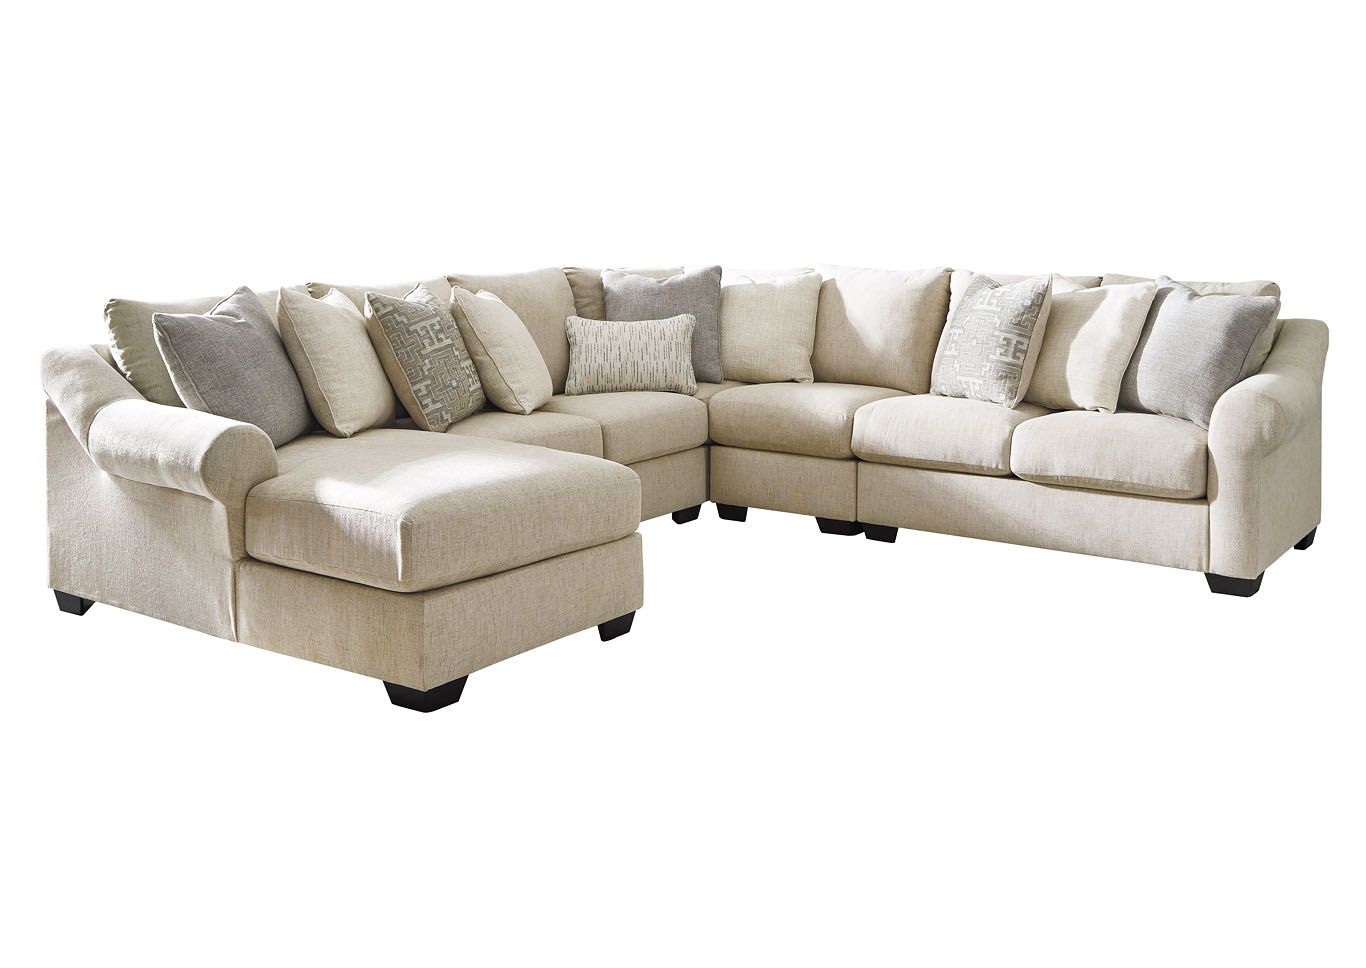 Carnaby 5 Piece Sectional Chaise